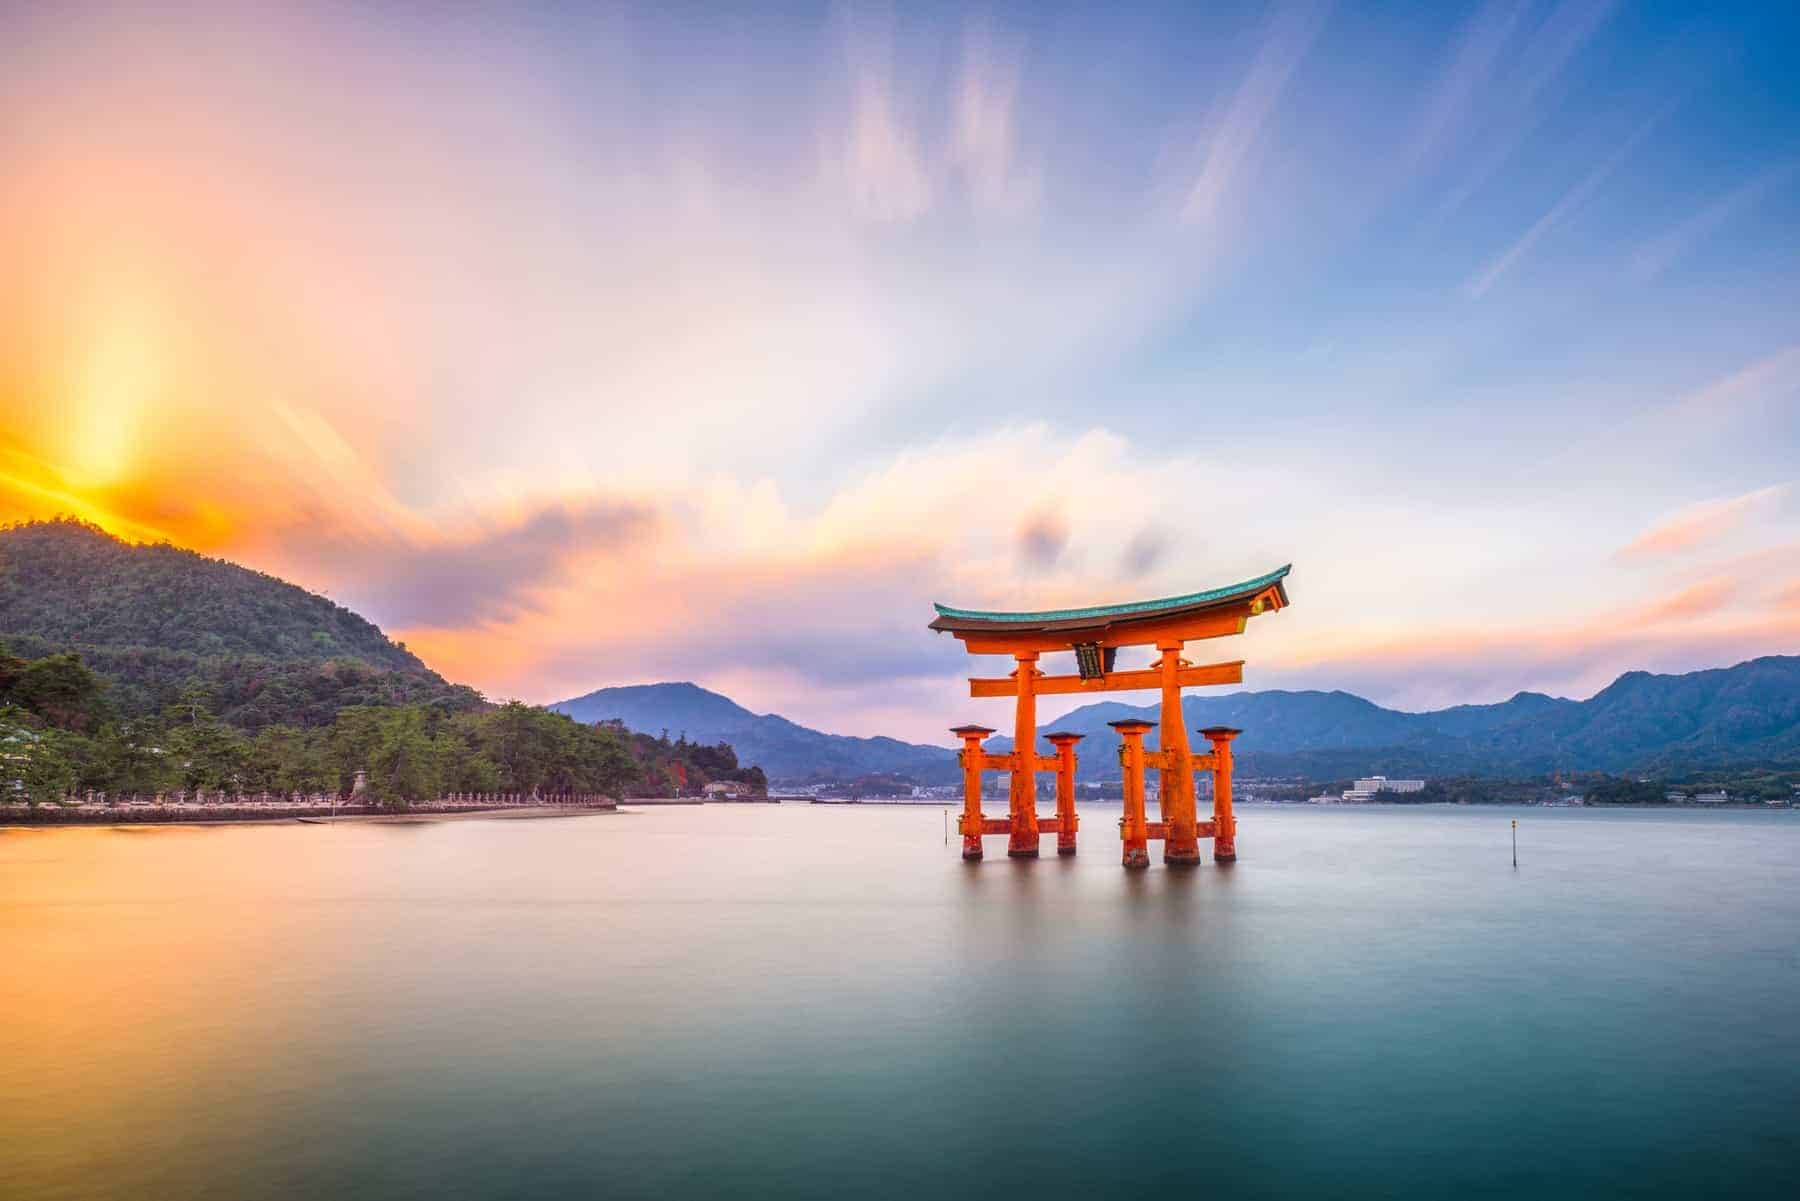 Miyajima, Hiroshima, Japan at Itsukushima Shrine.